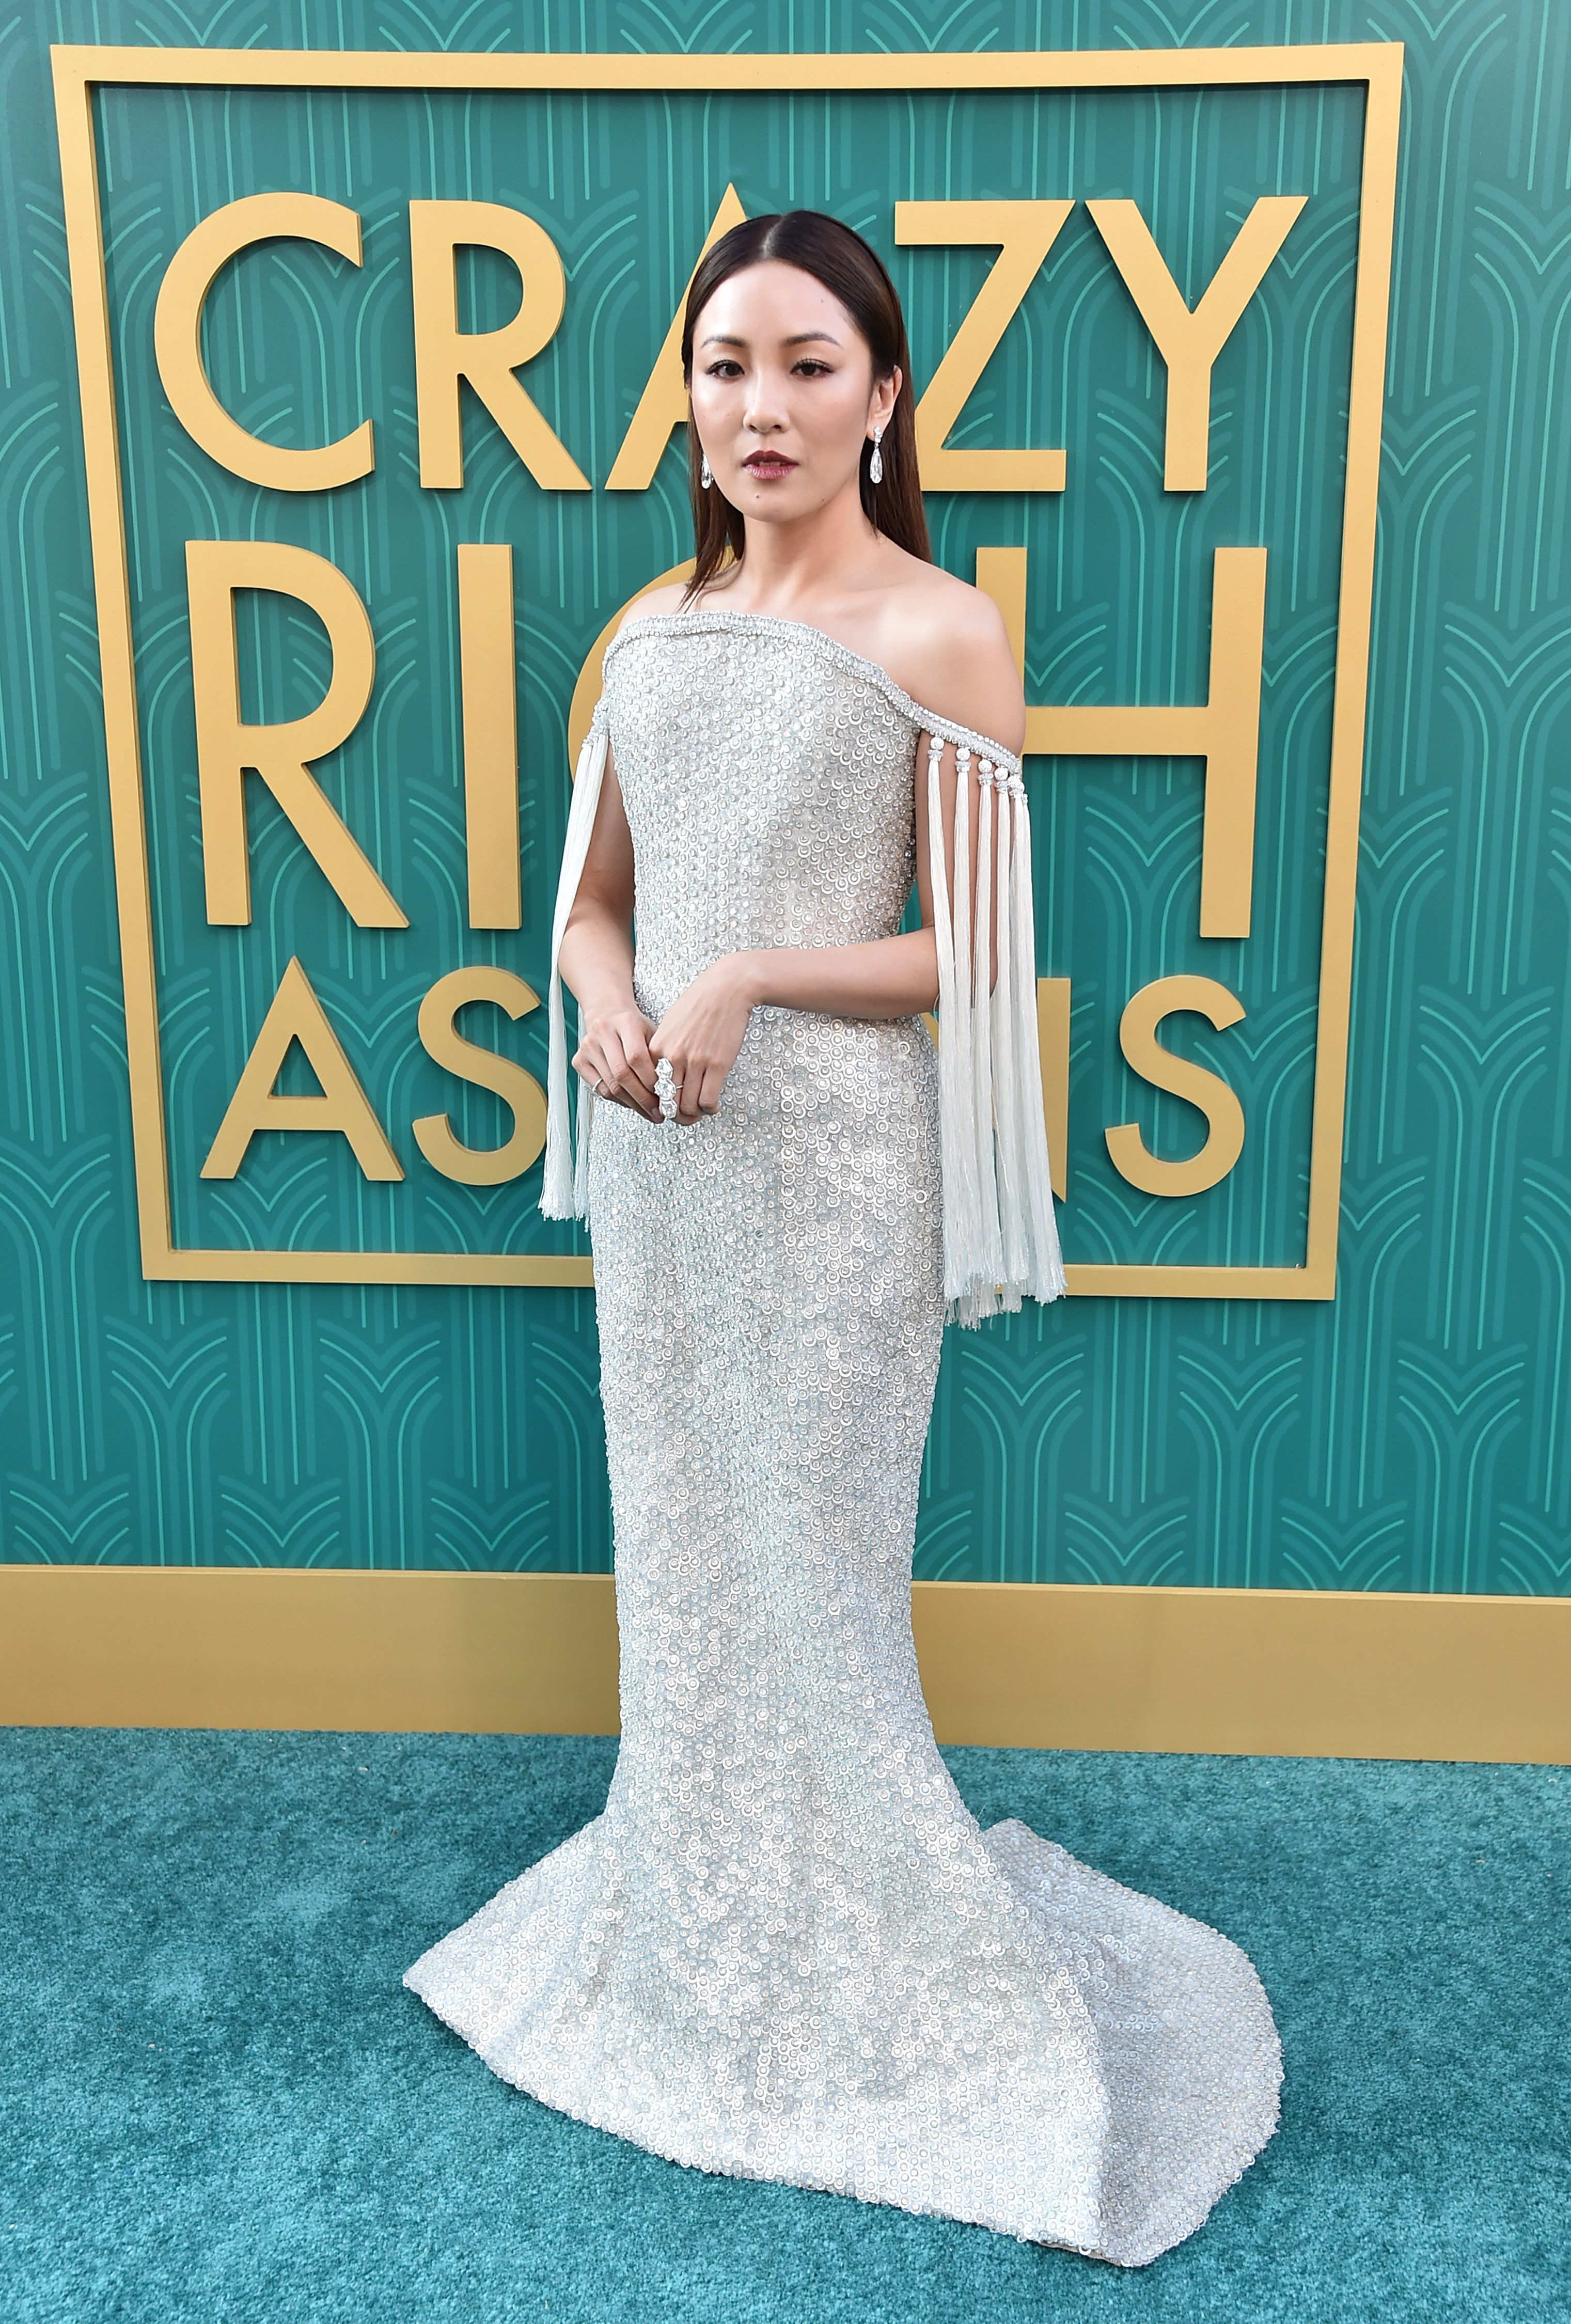 Wu was the vision of a screen siren in a silver beaded off-the-shoulder Ralph and Russo couture gown to celebrate the world premiere of Crazy Rich Asians.